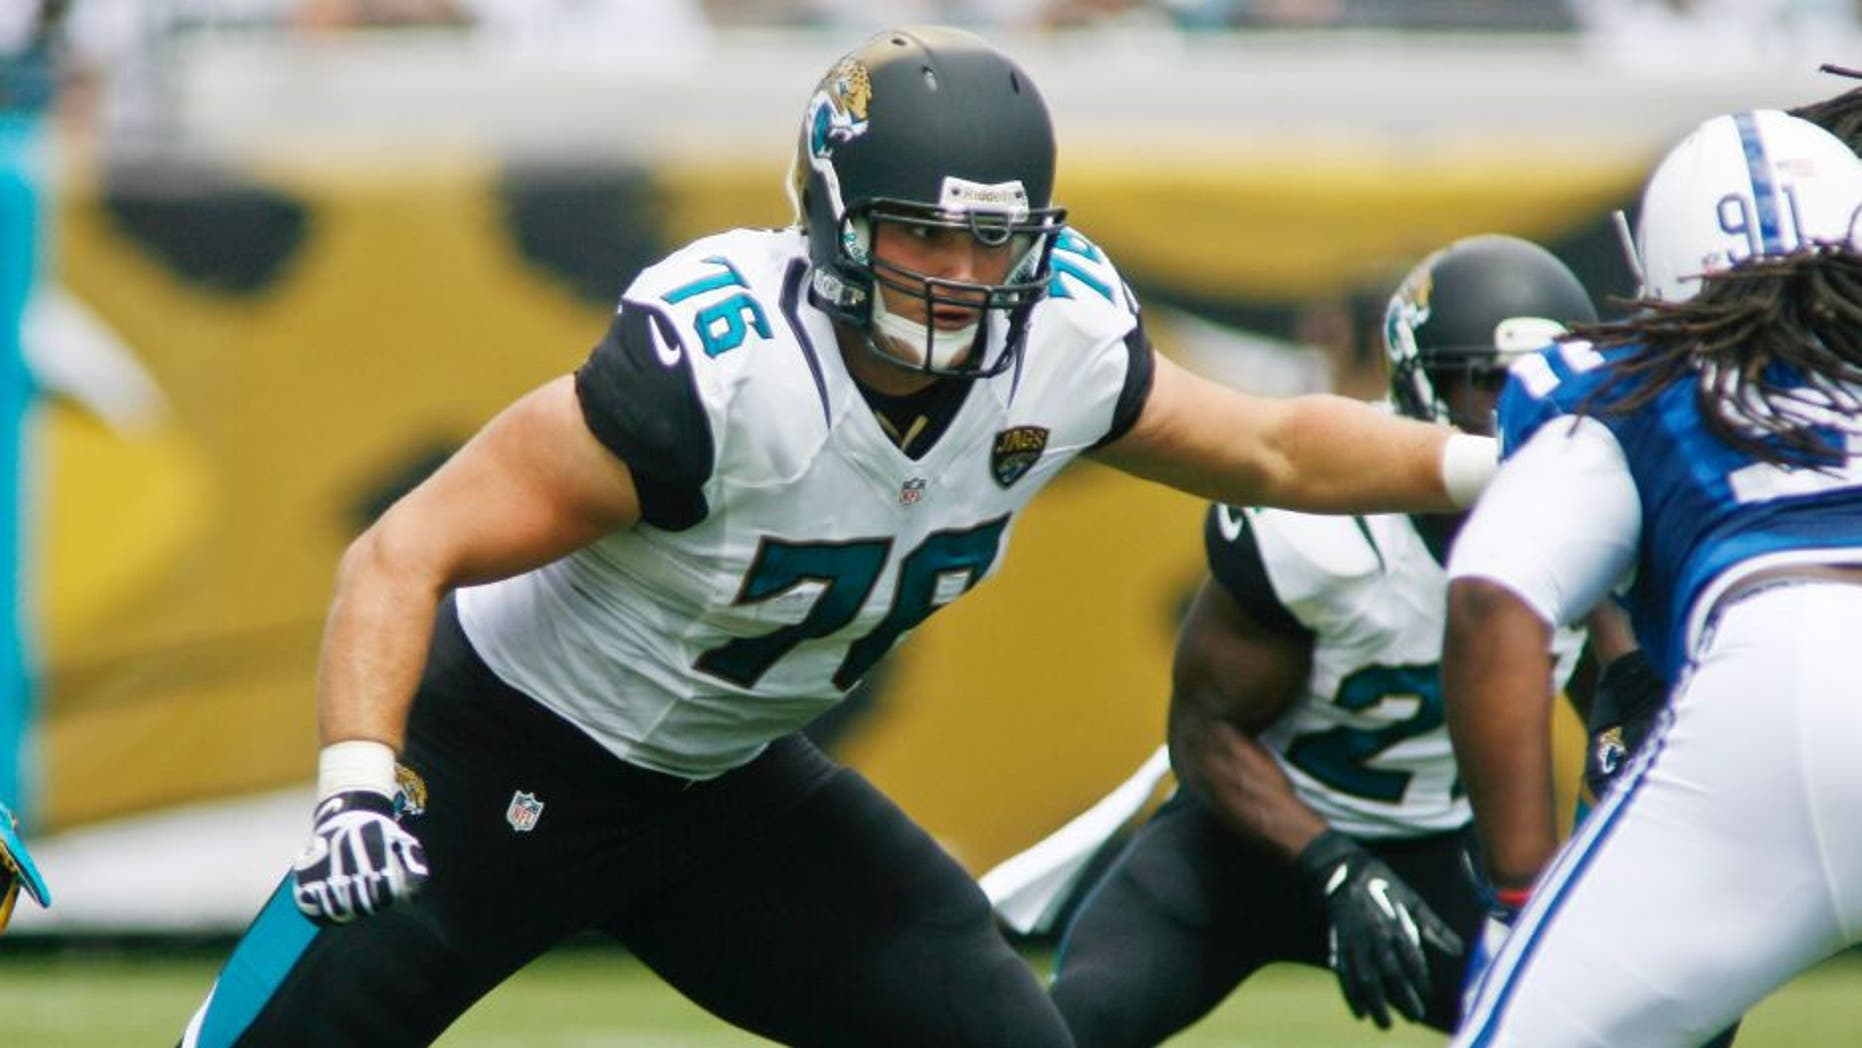 Sep 29, 2013; Jacksonville, FL, USA; Jacksonville Jaguars tackle Luke Joeckel (76) in the first quarter of their game against the Indianapolis Colts at EverBank Field. The Indianapolis Colts beat the Jacksonville Jaguars 37-3. Mandatory Credit: Phil Sears-USA TODAY Sports